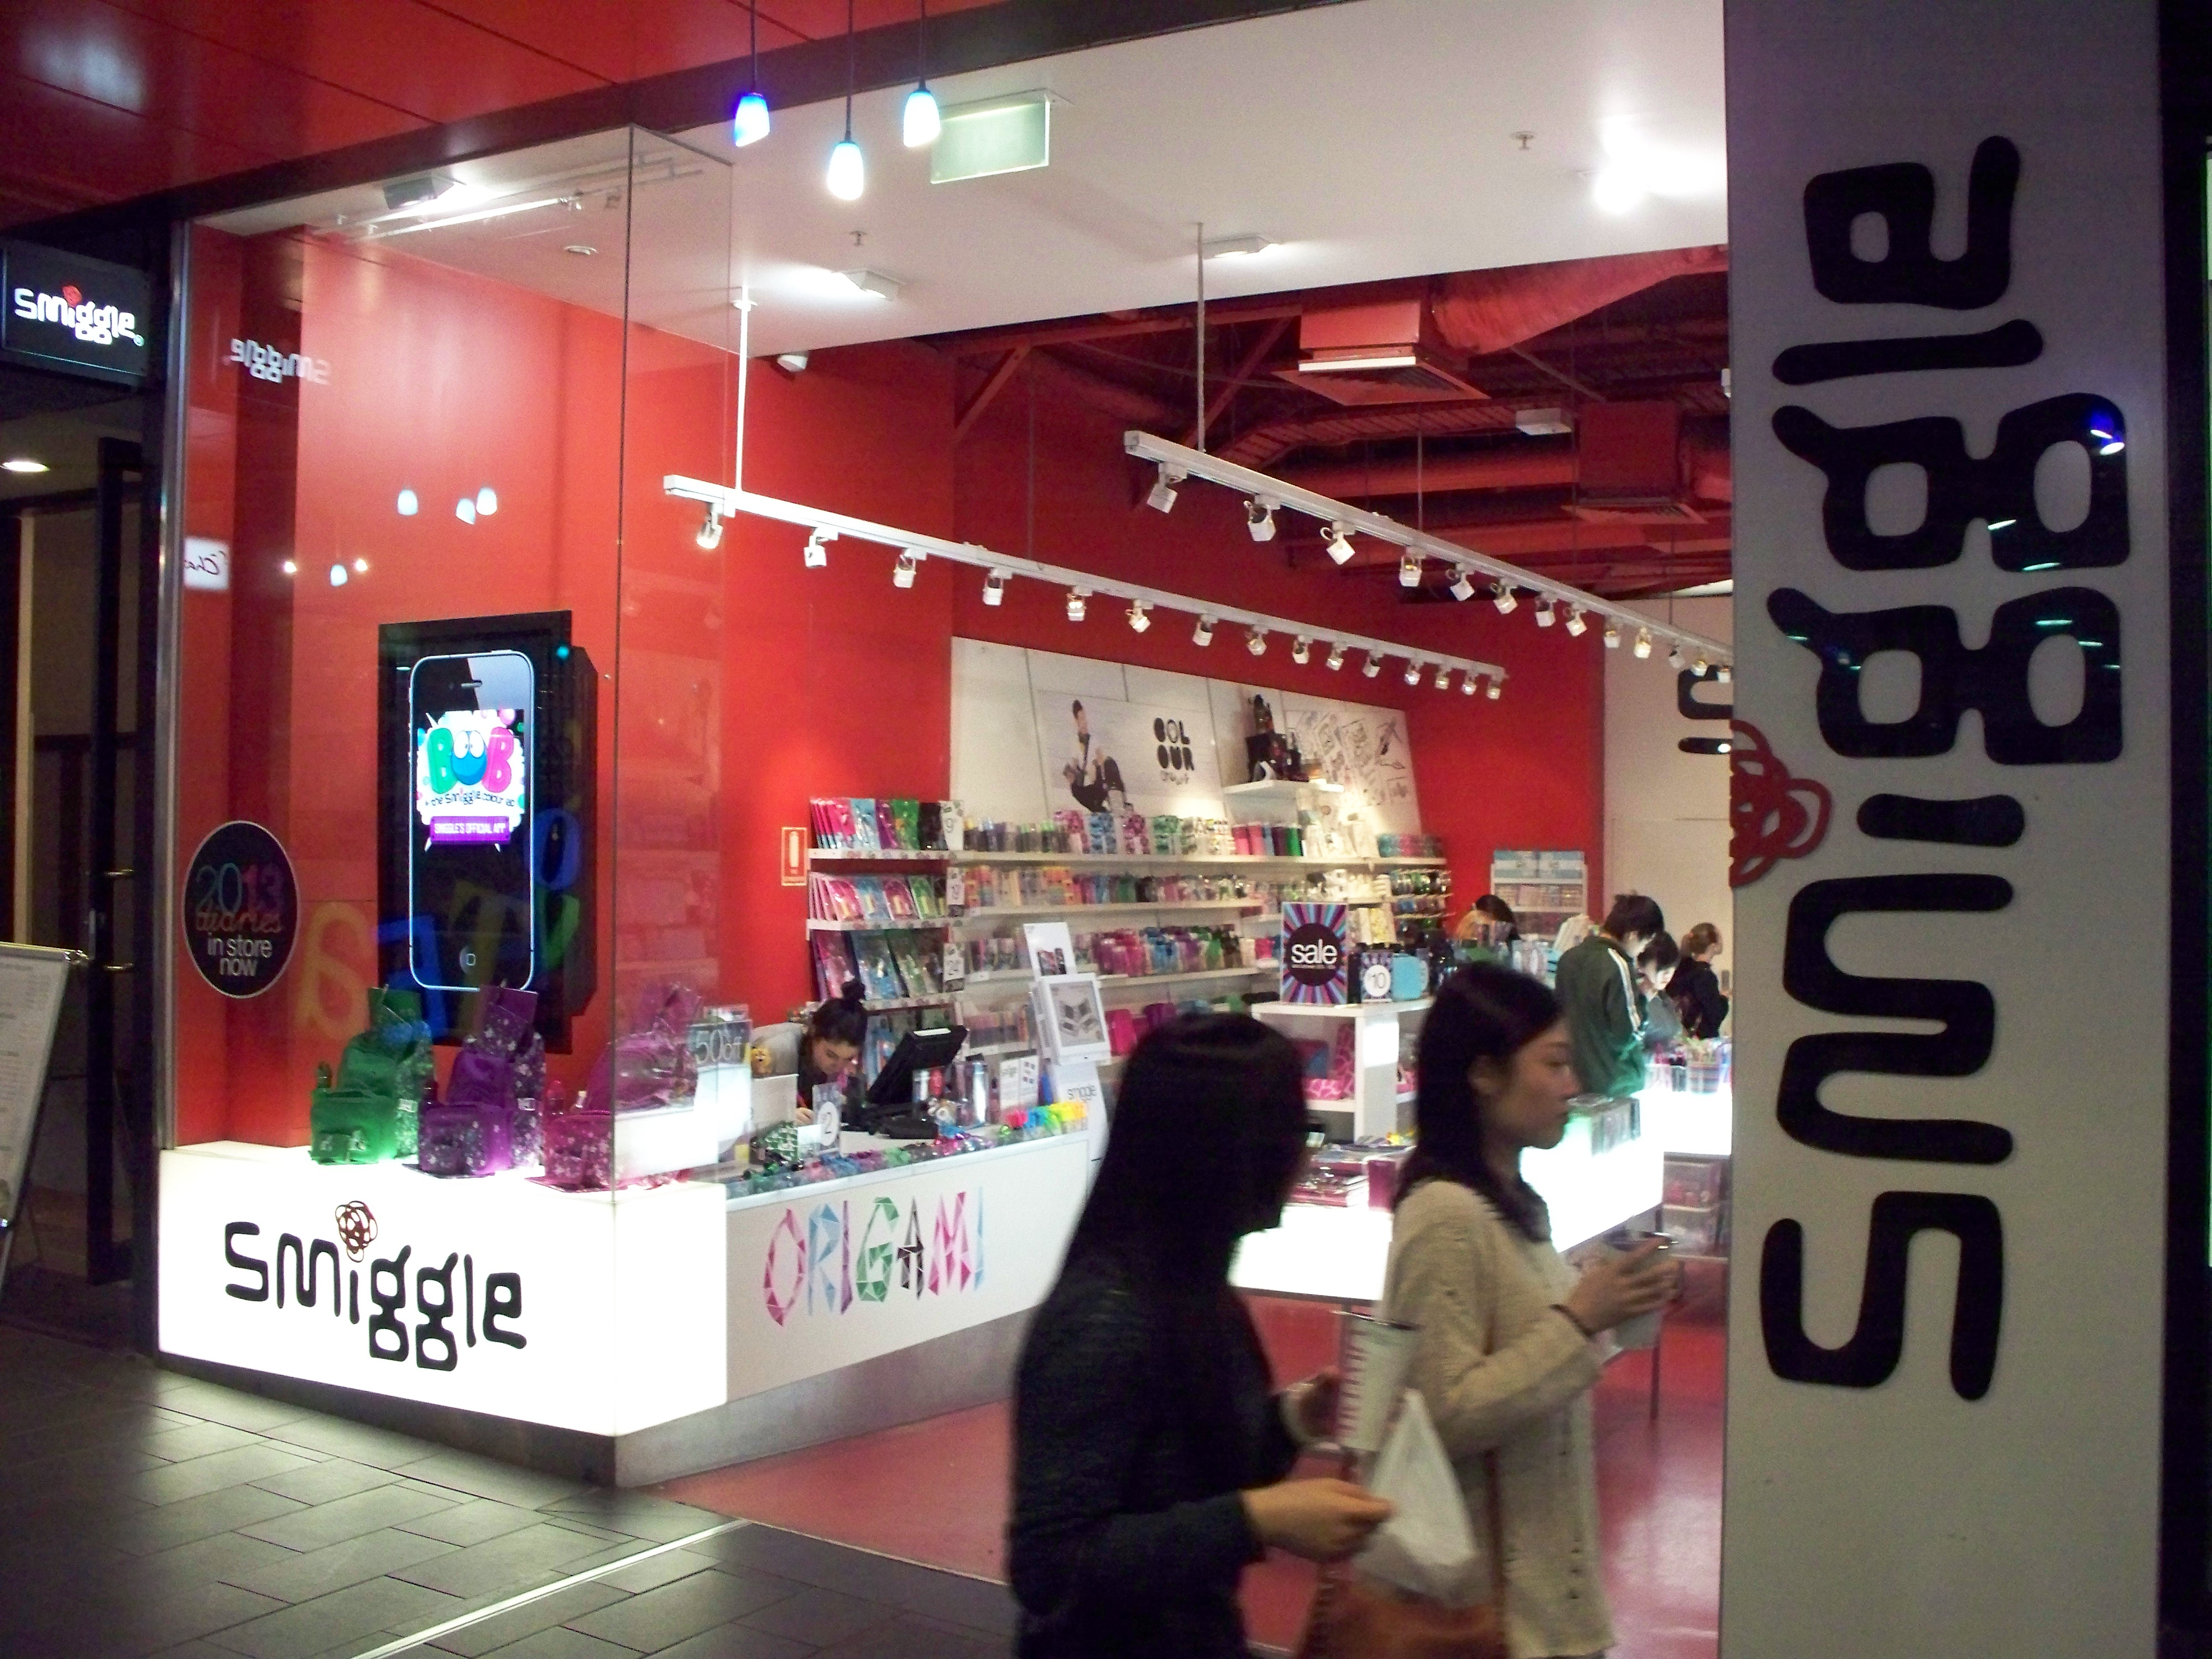 dating site smiggle